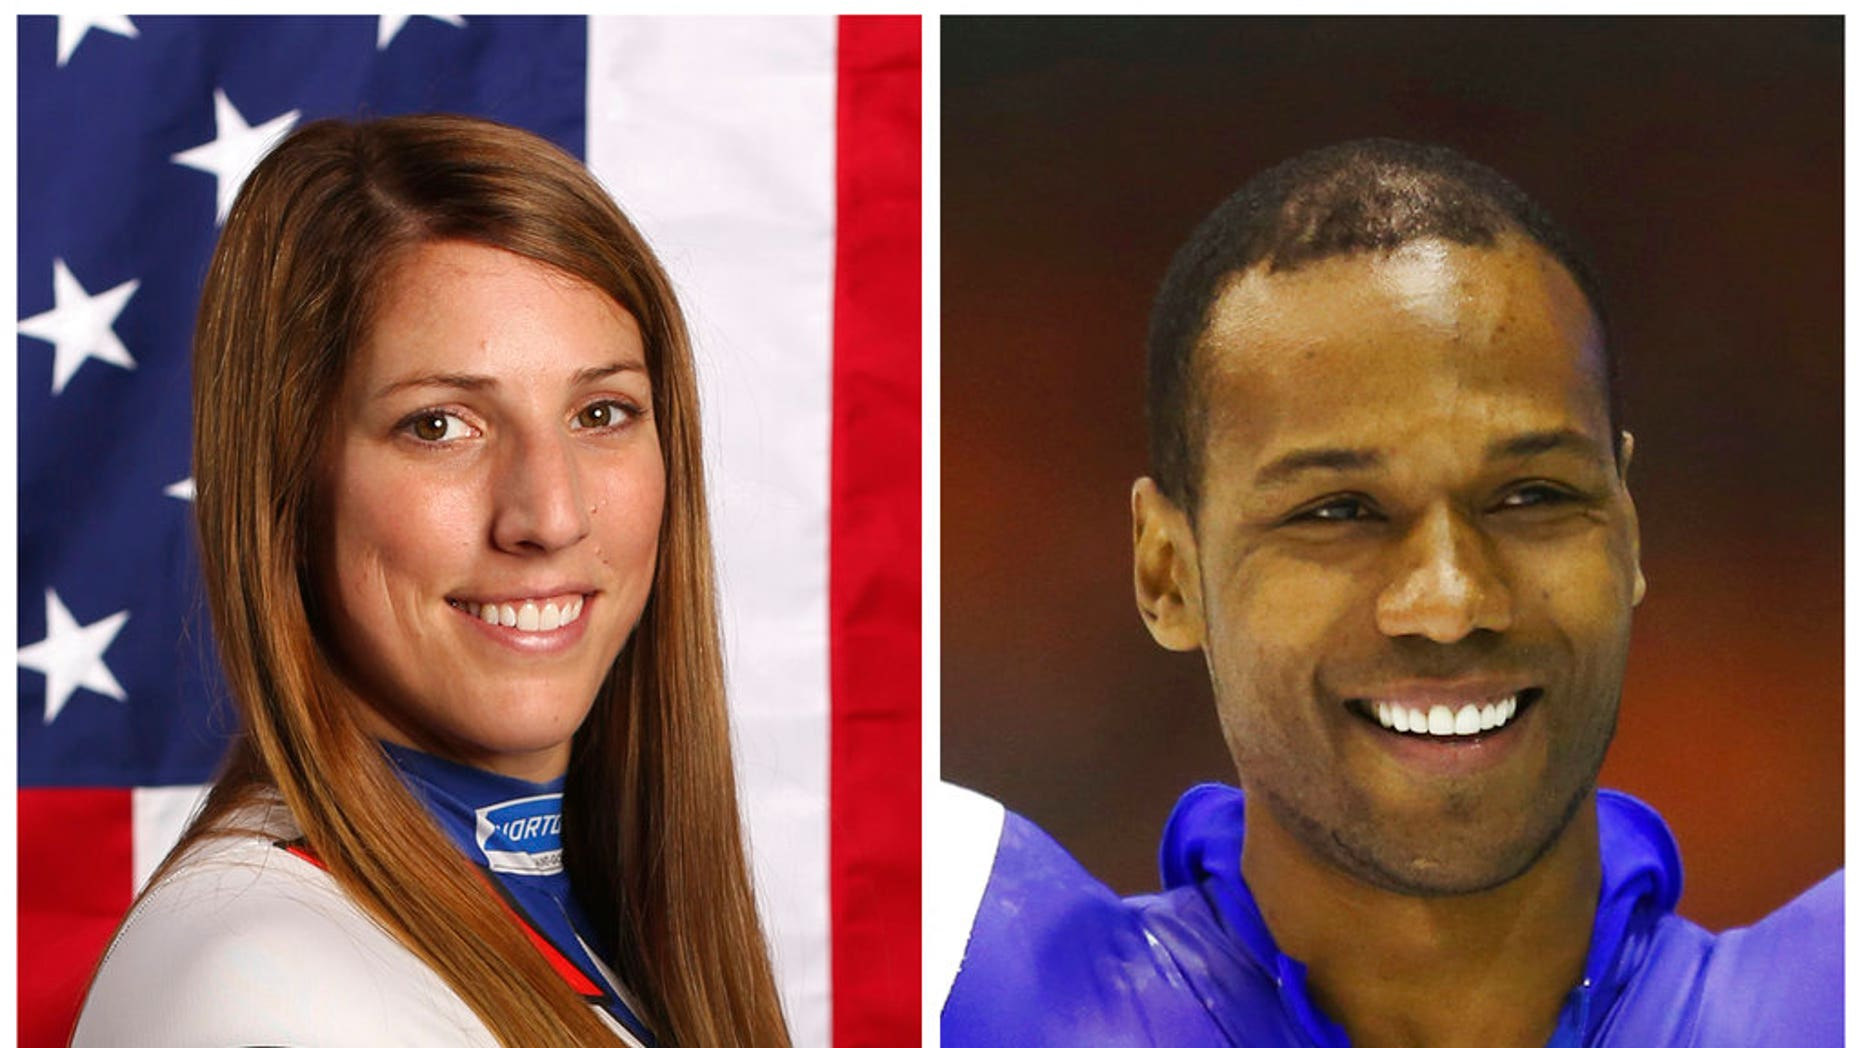 A tweet posted to the account of Shani Davis, right, is blasting the selection of luger Erin Hamlin as the U.S. flagbearer for Friday's opening ceremony for the Winter Olympics in South Korea.